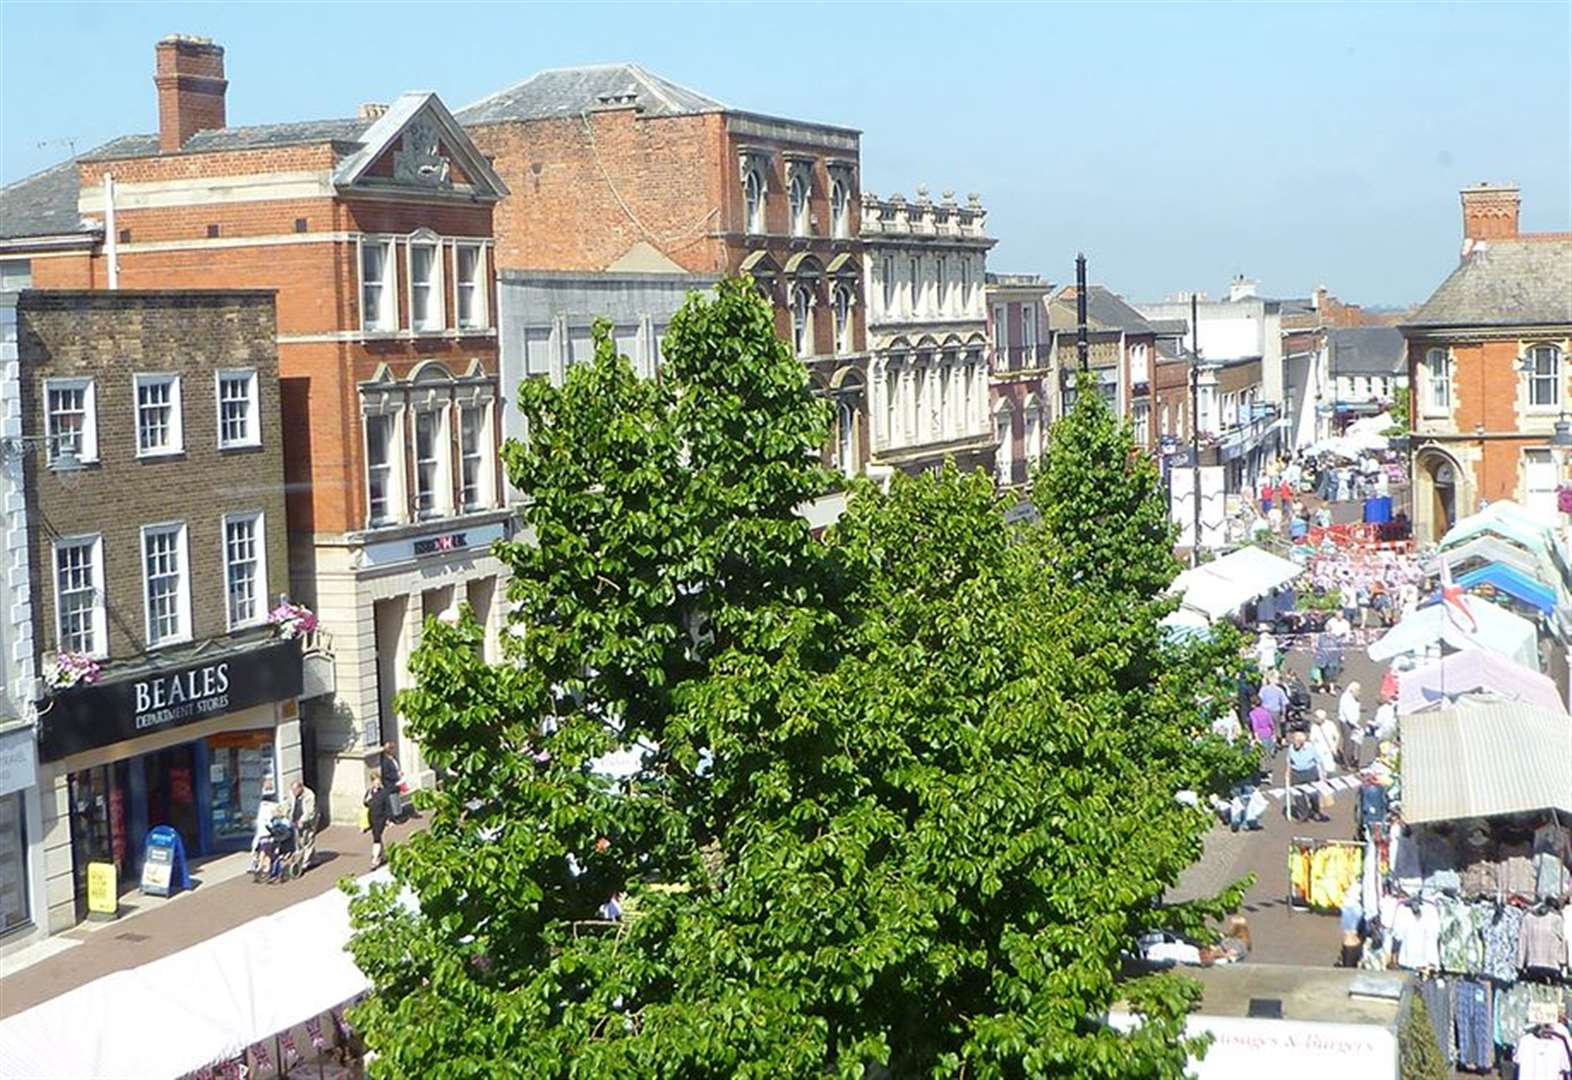 Wishlist for town centres following £500k plans